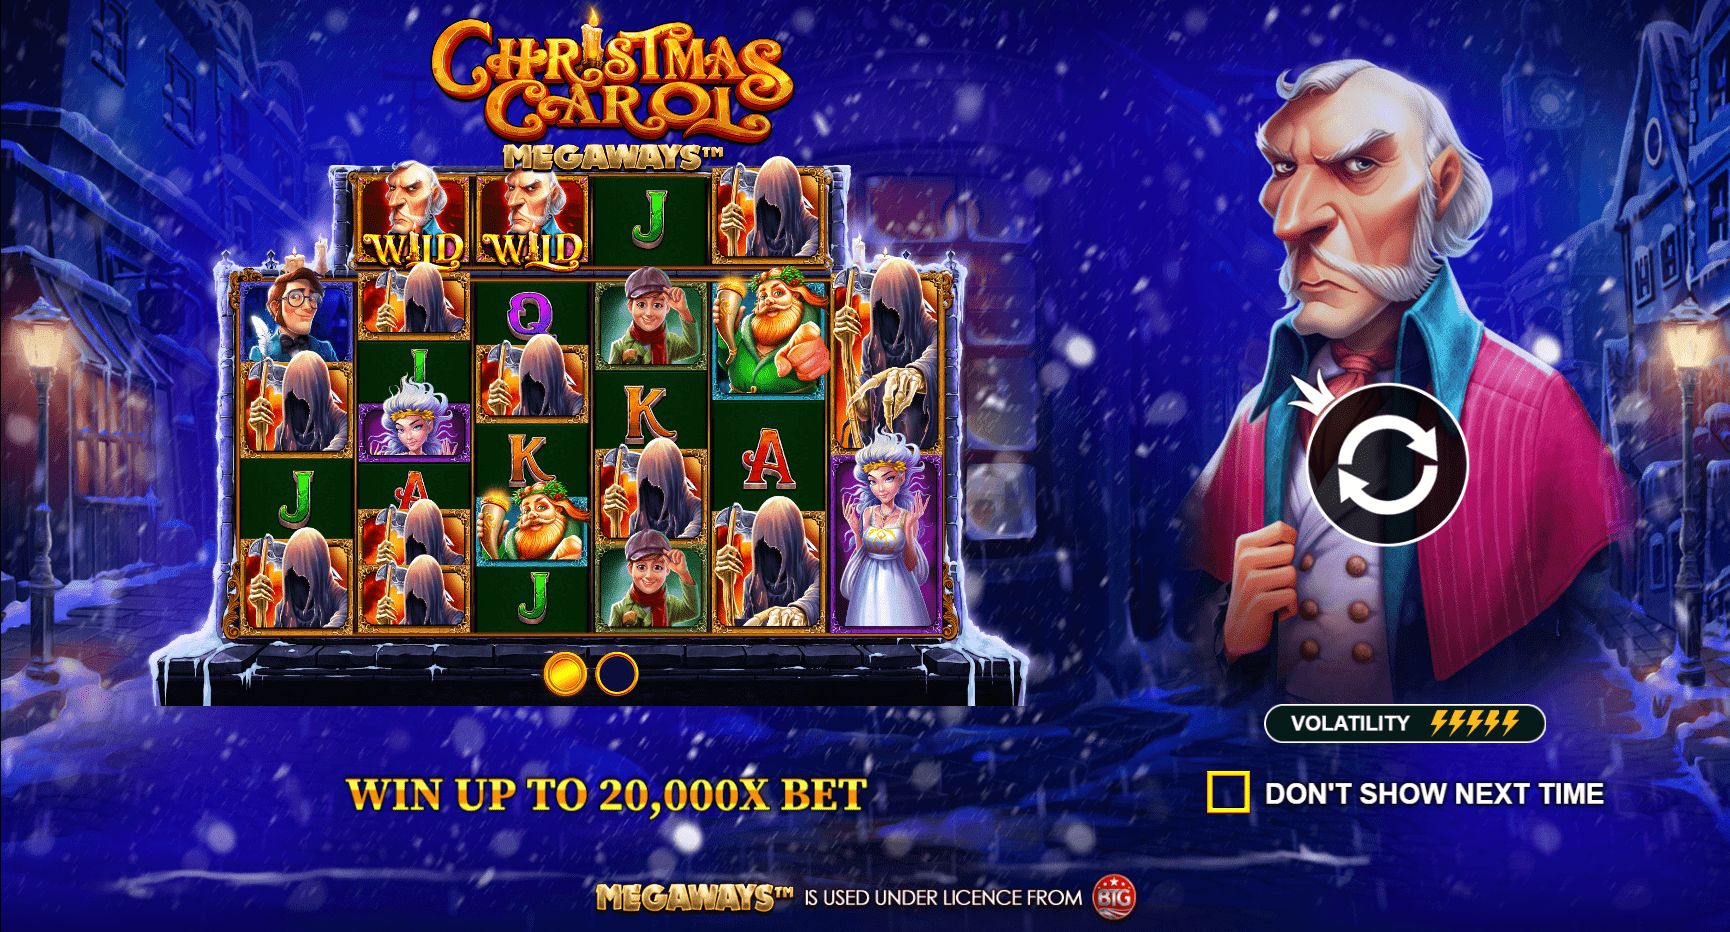 Christmas Carol Megaways video slot welcome screen